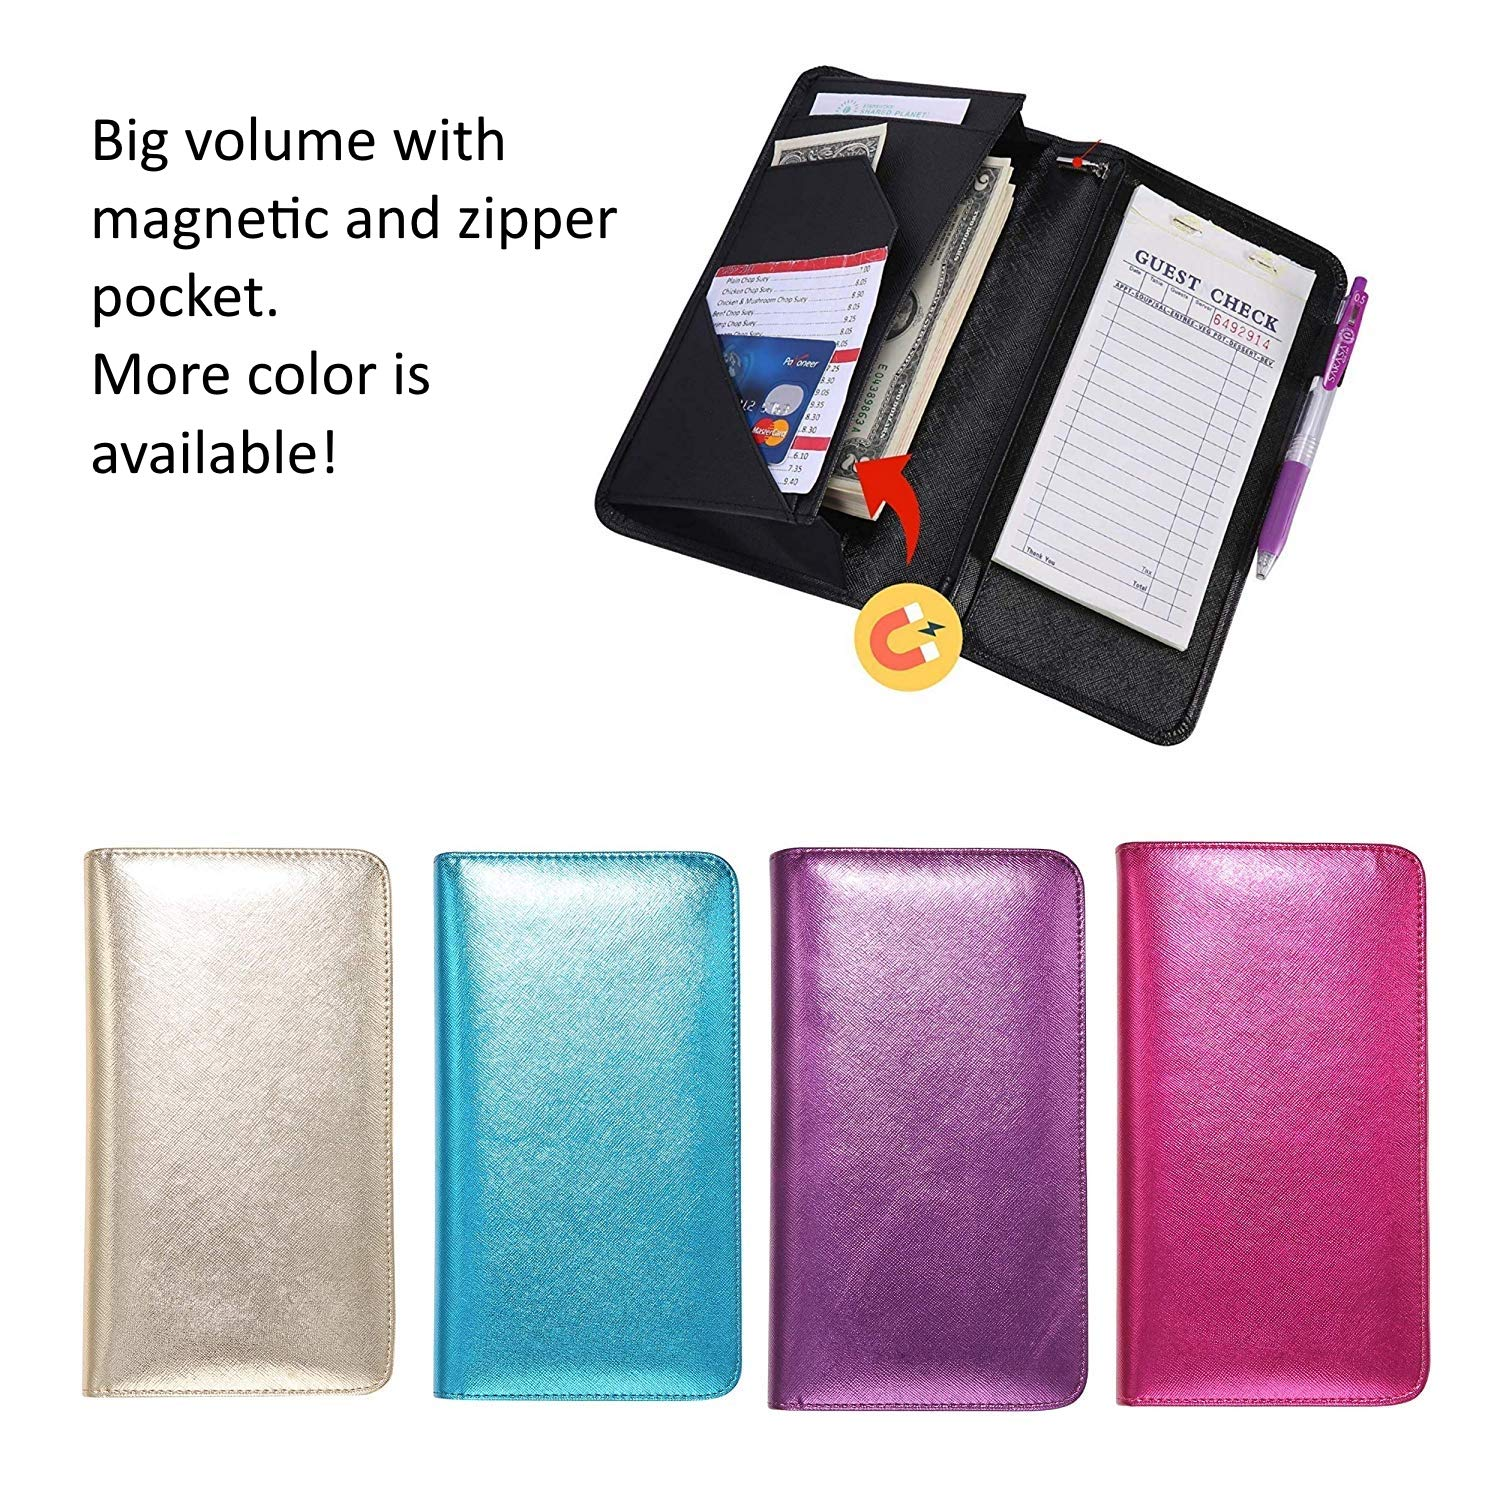 Mymazn Pink Server Book for Waitress Book with Zipper Pocket Server Wallet with Money Pocket and Zipper Pouch Restaurant Waitstaff Organizer, Guest Check Book Holder Money Pocket Fit Server Apron by Mymazn (Image #7)